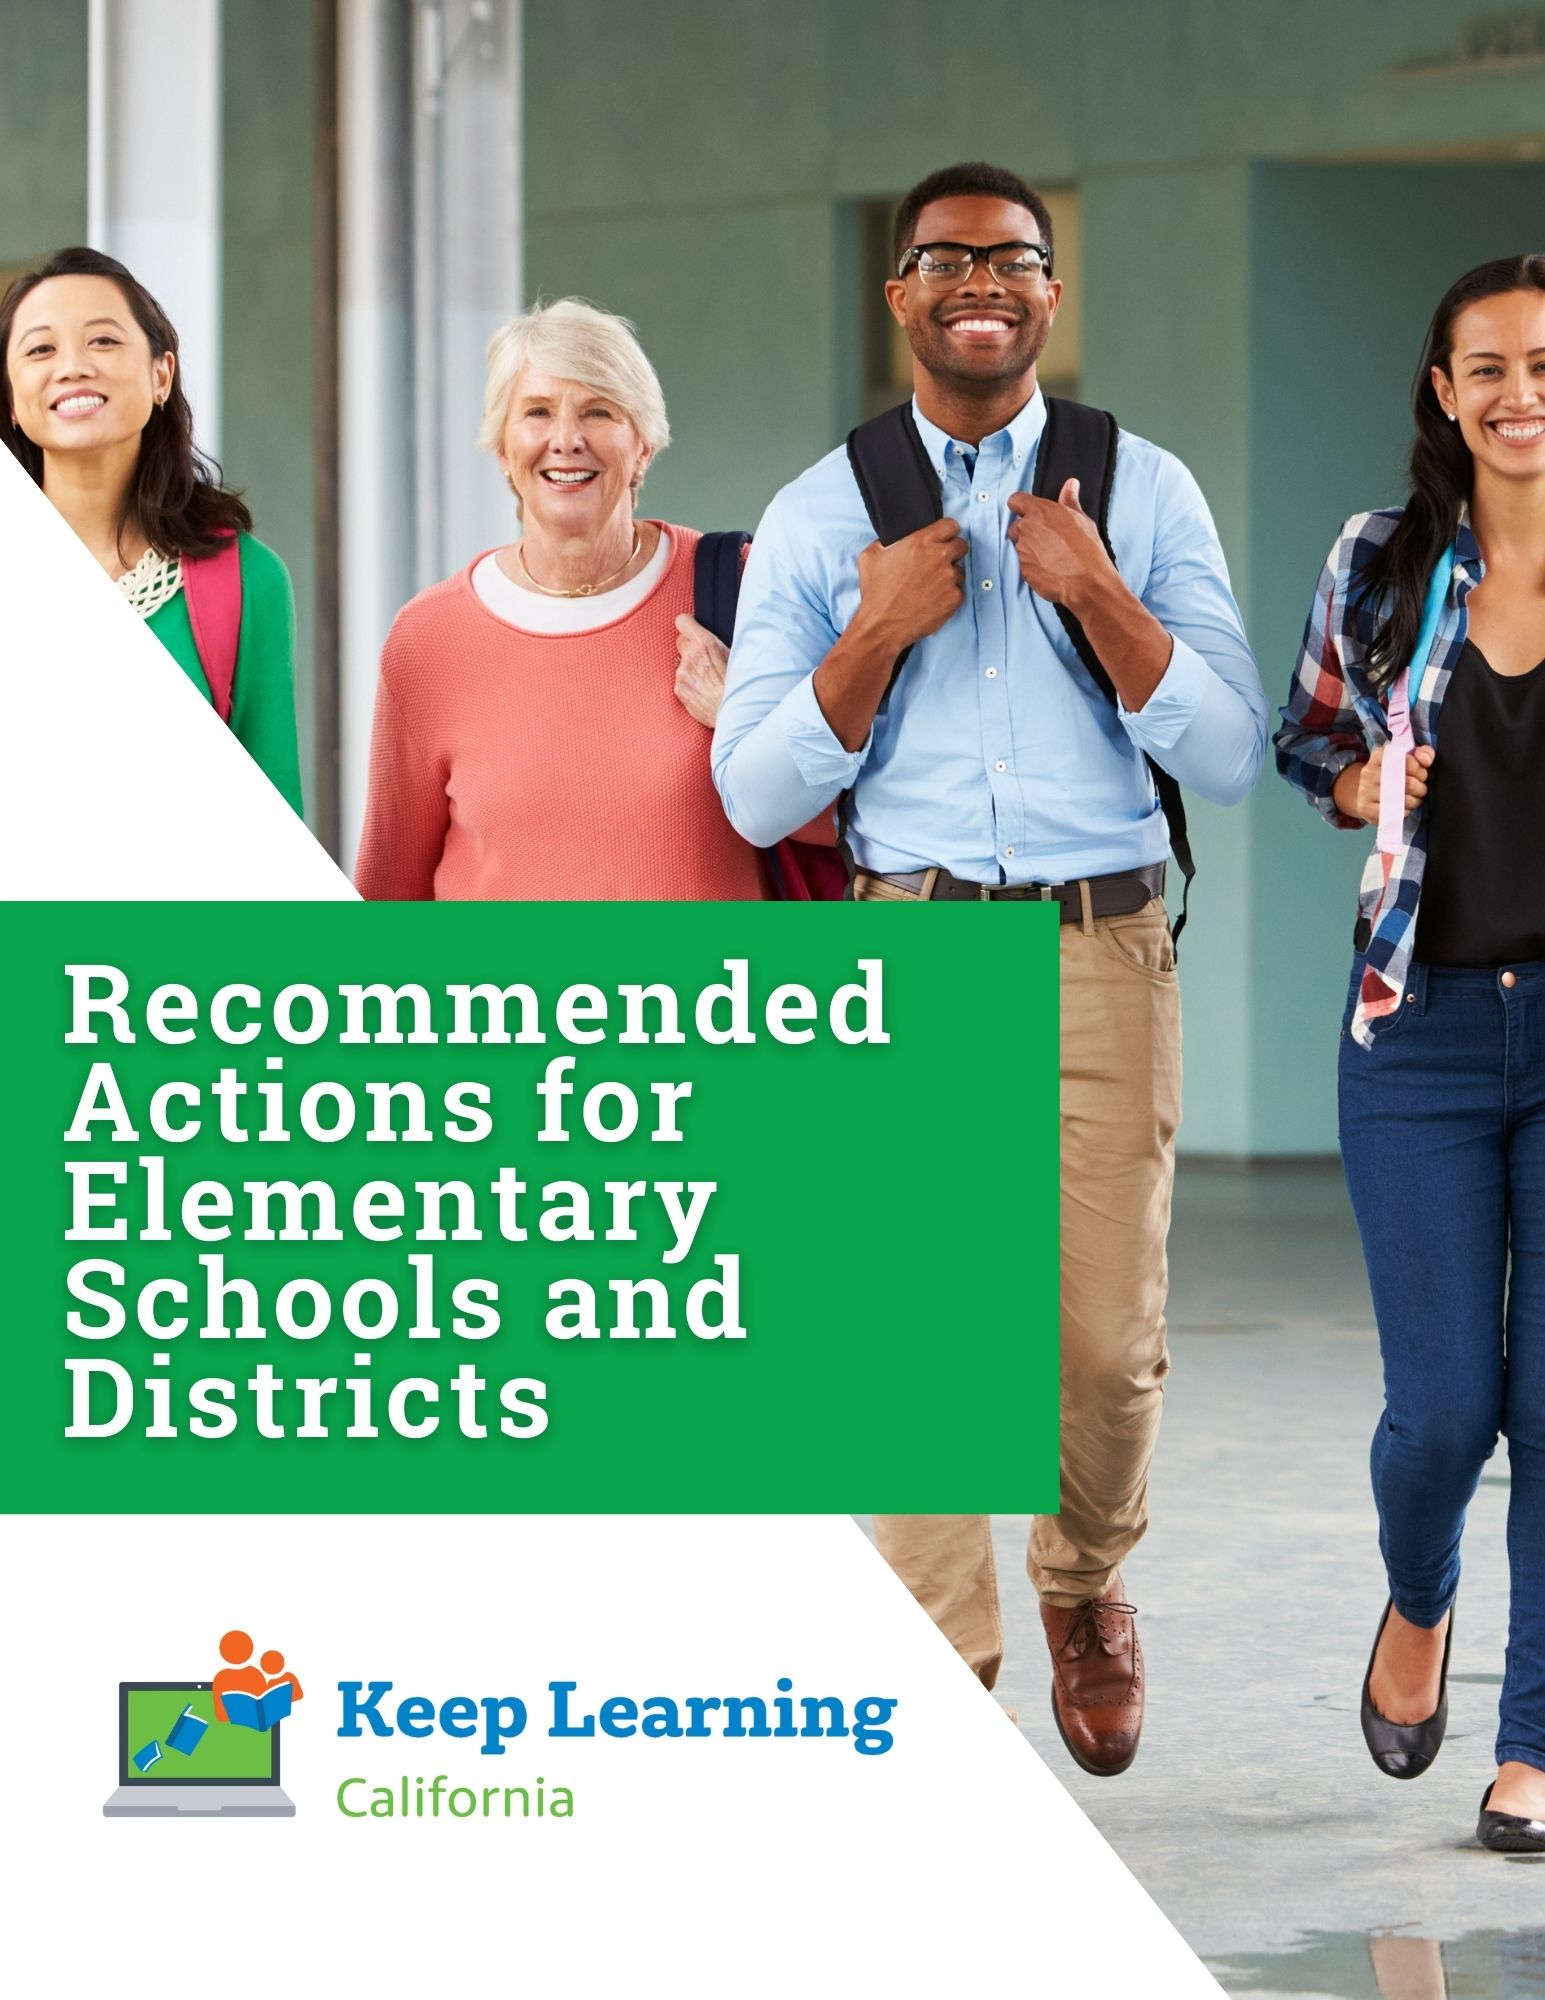 PDF – Recommended Actions for Elementary Schools and Districts